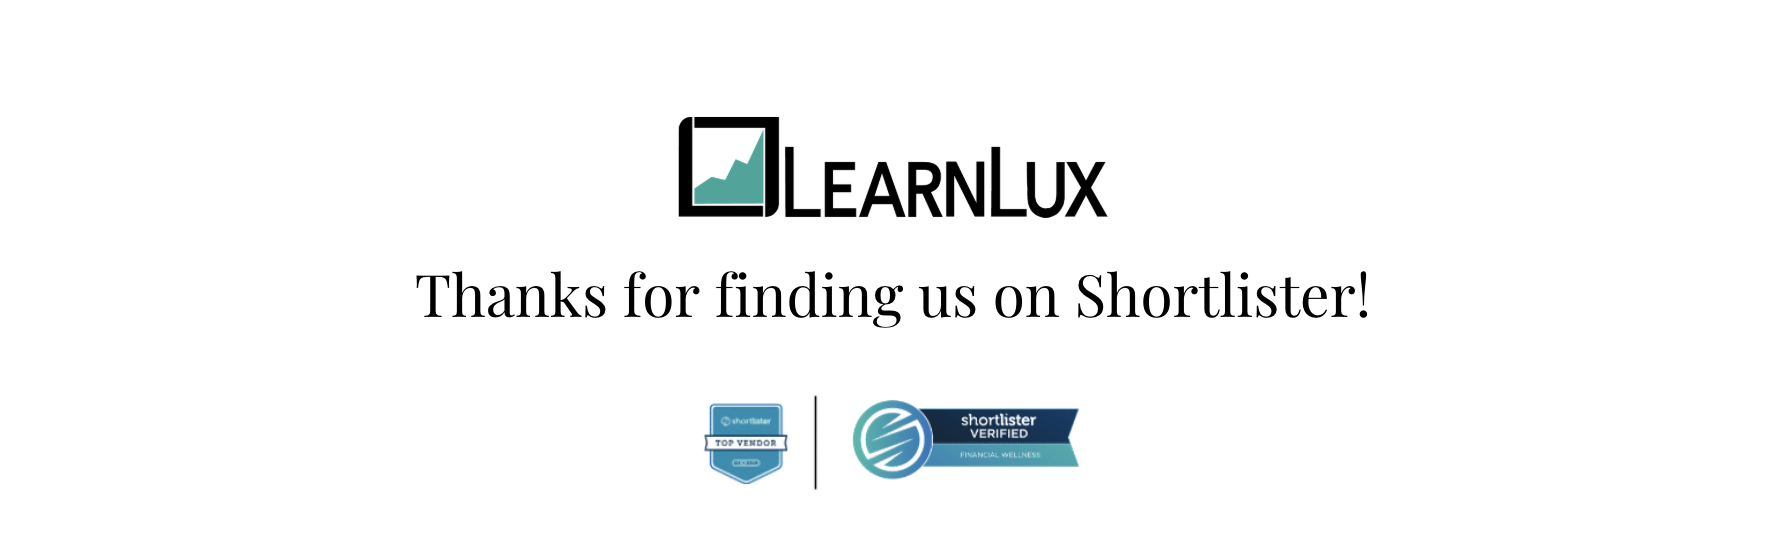 learnlux is the #1 financial wellness solution on shortlister